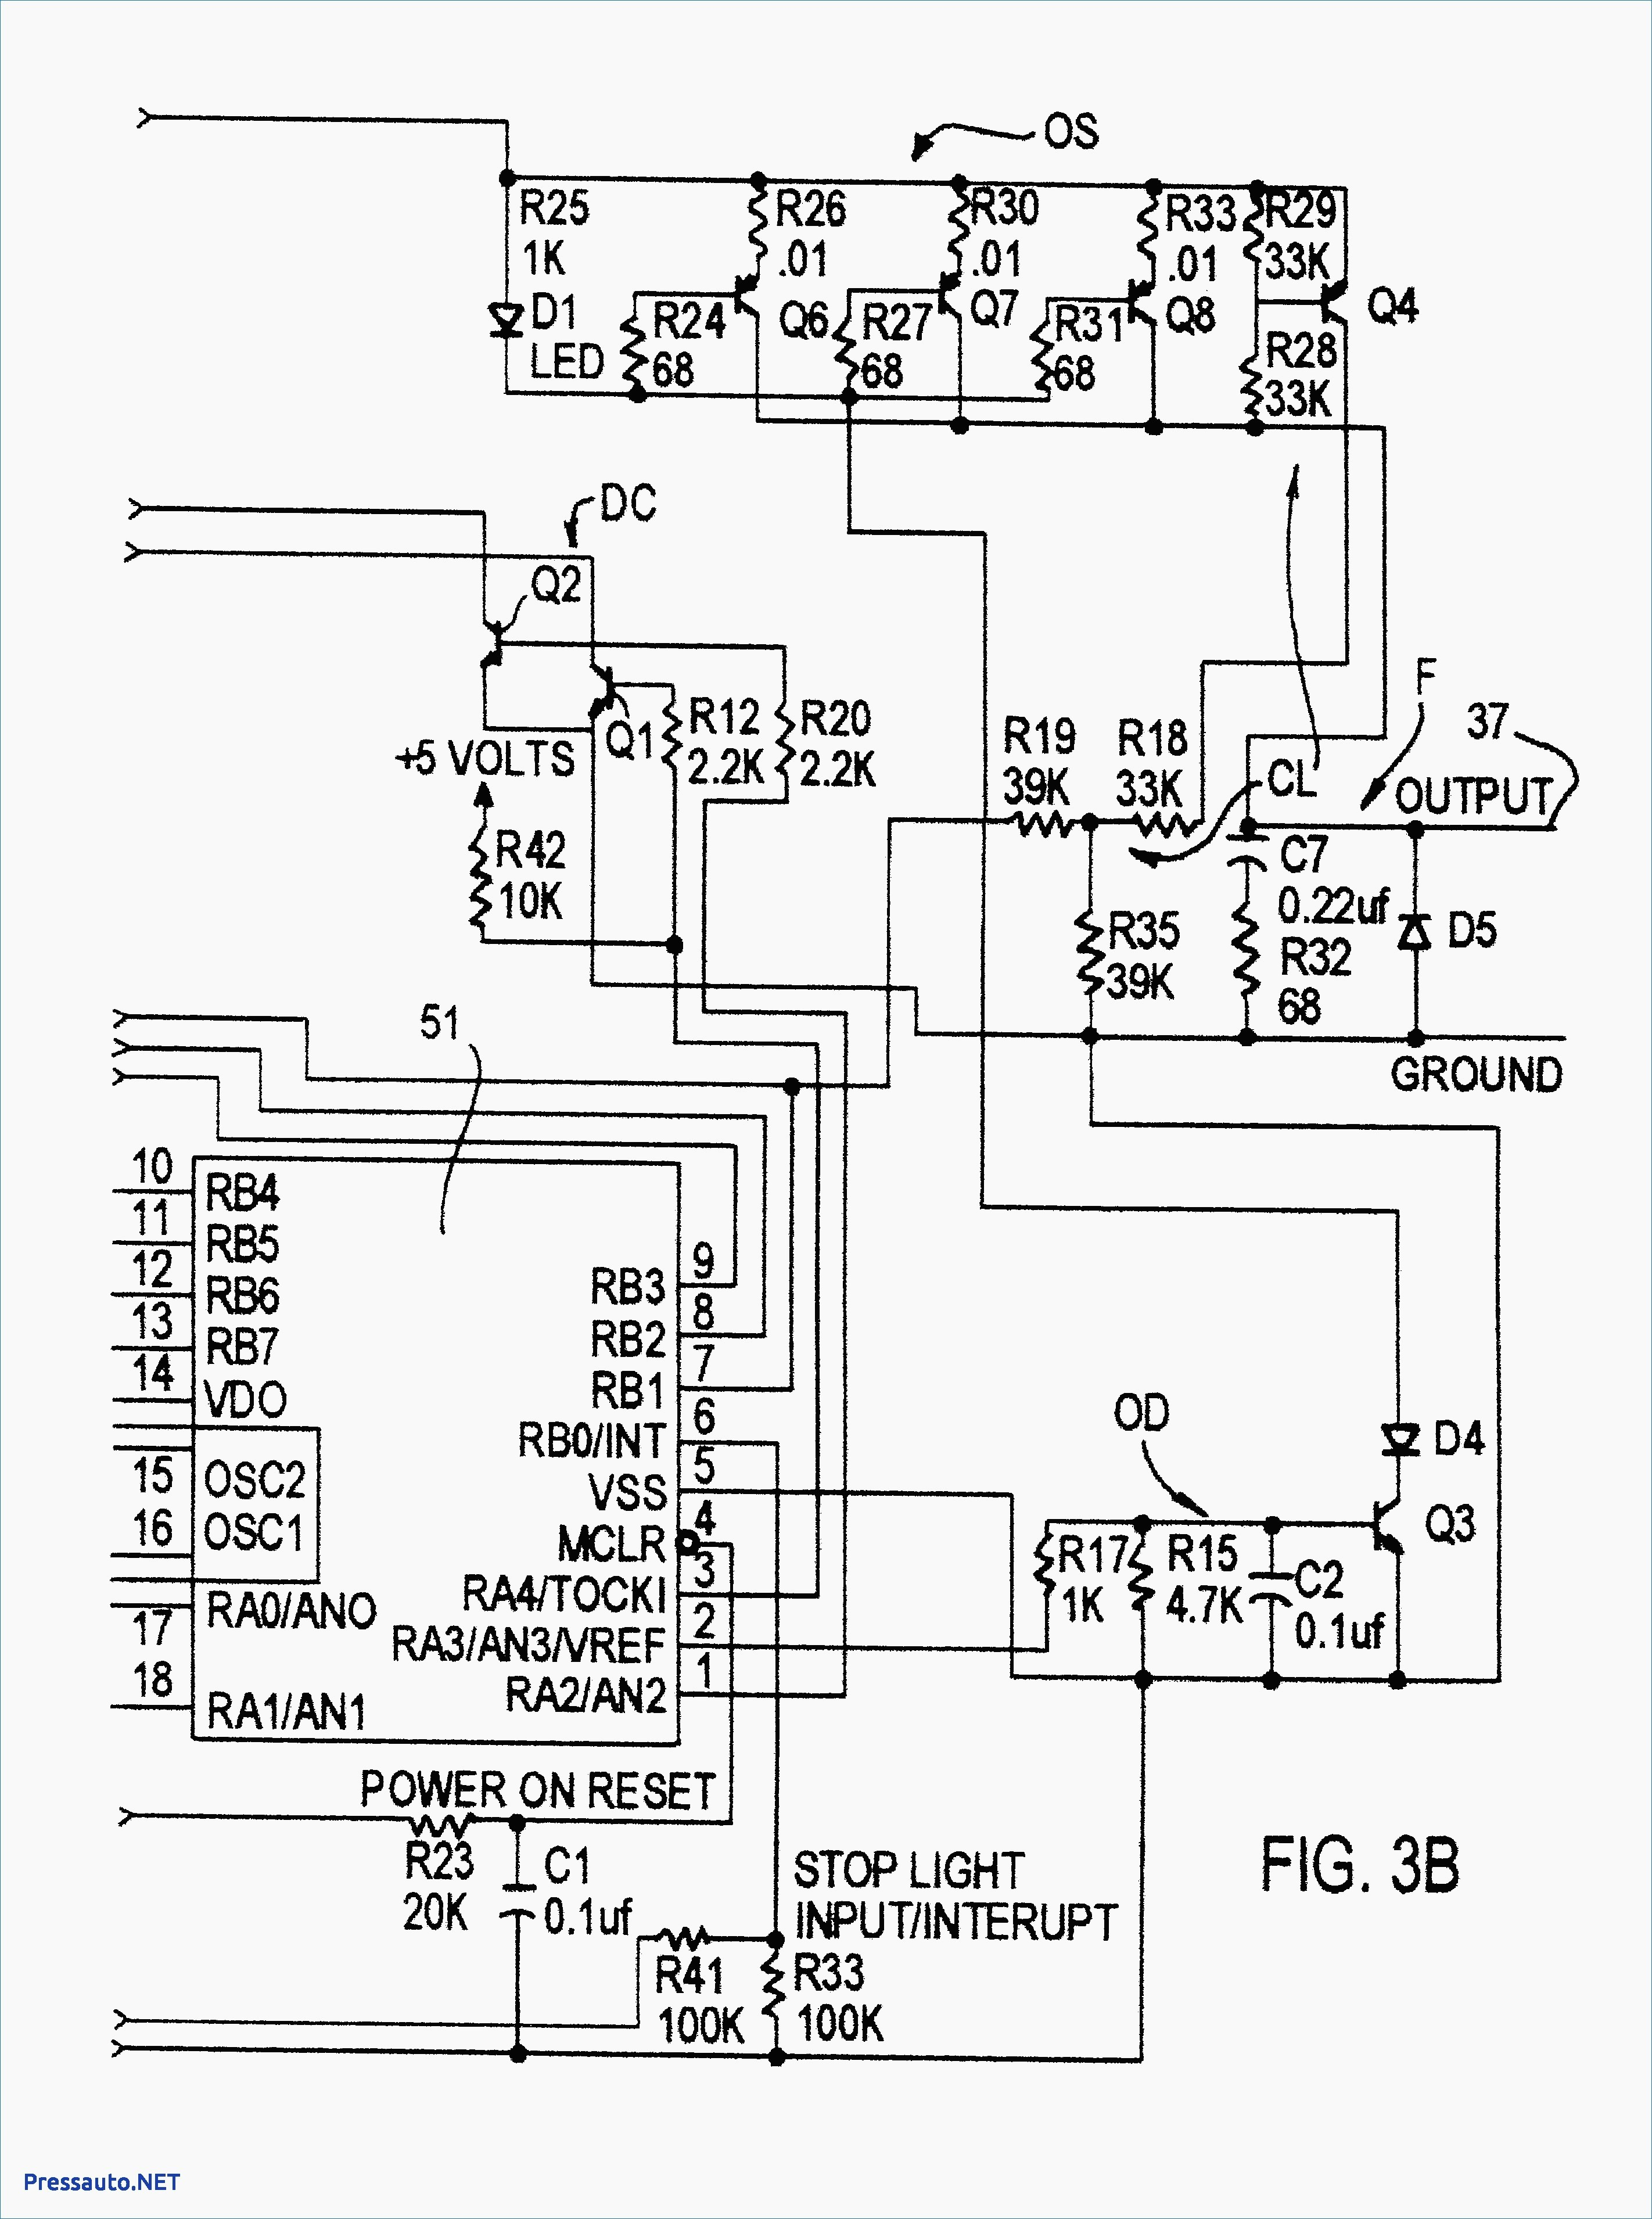 Wiring Diagram Electric Trailer Brake Control With Brakes Fit 2844 2C3820 Ssl 1 And